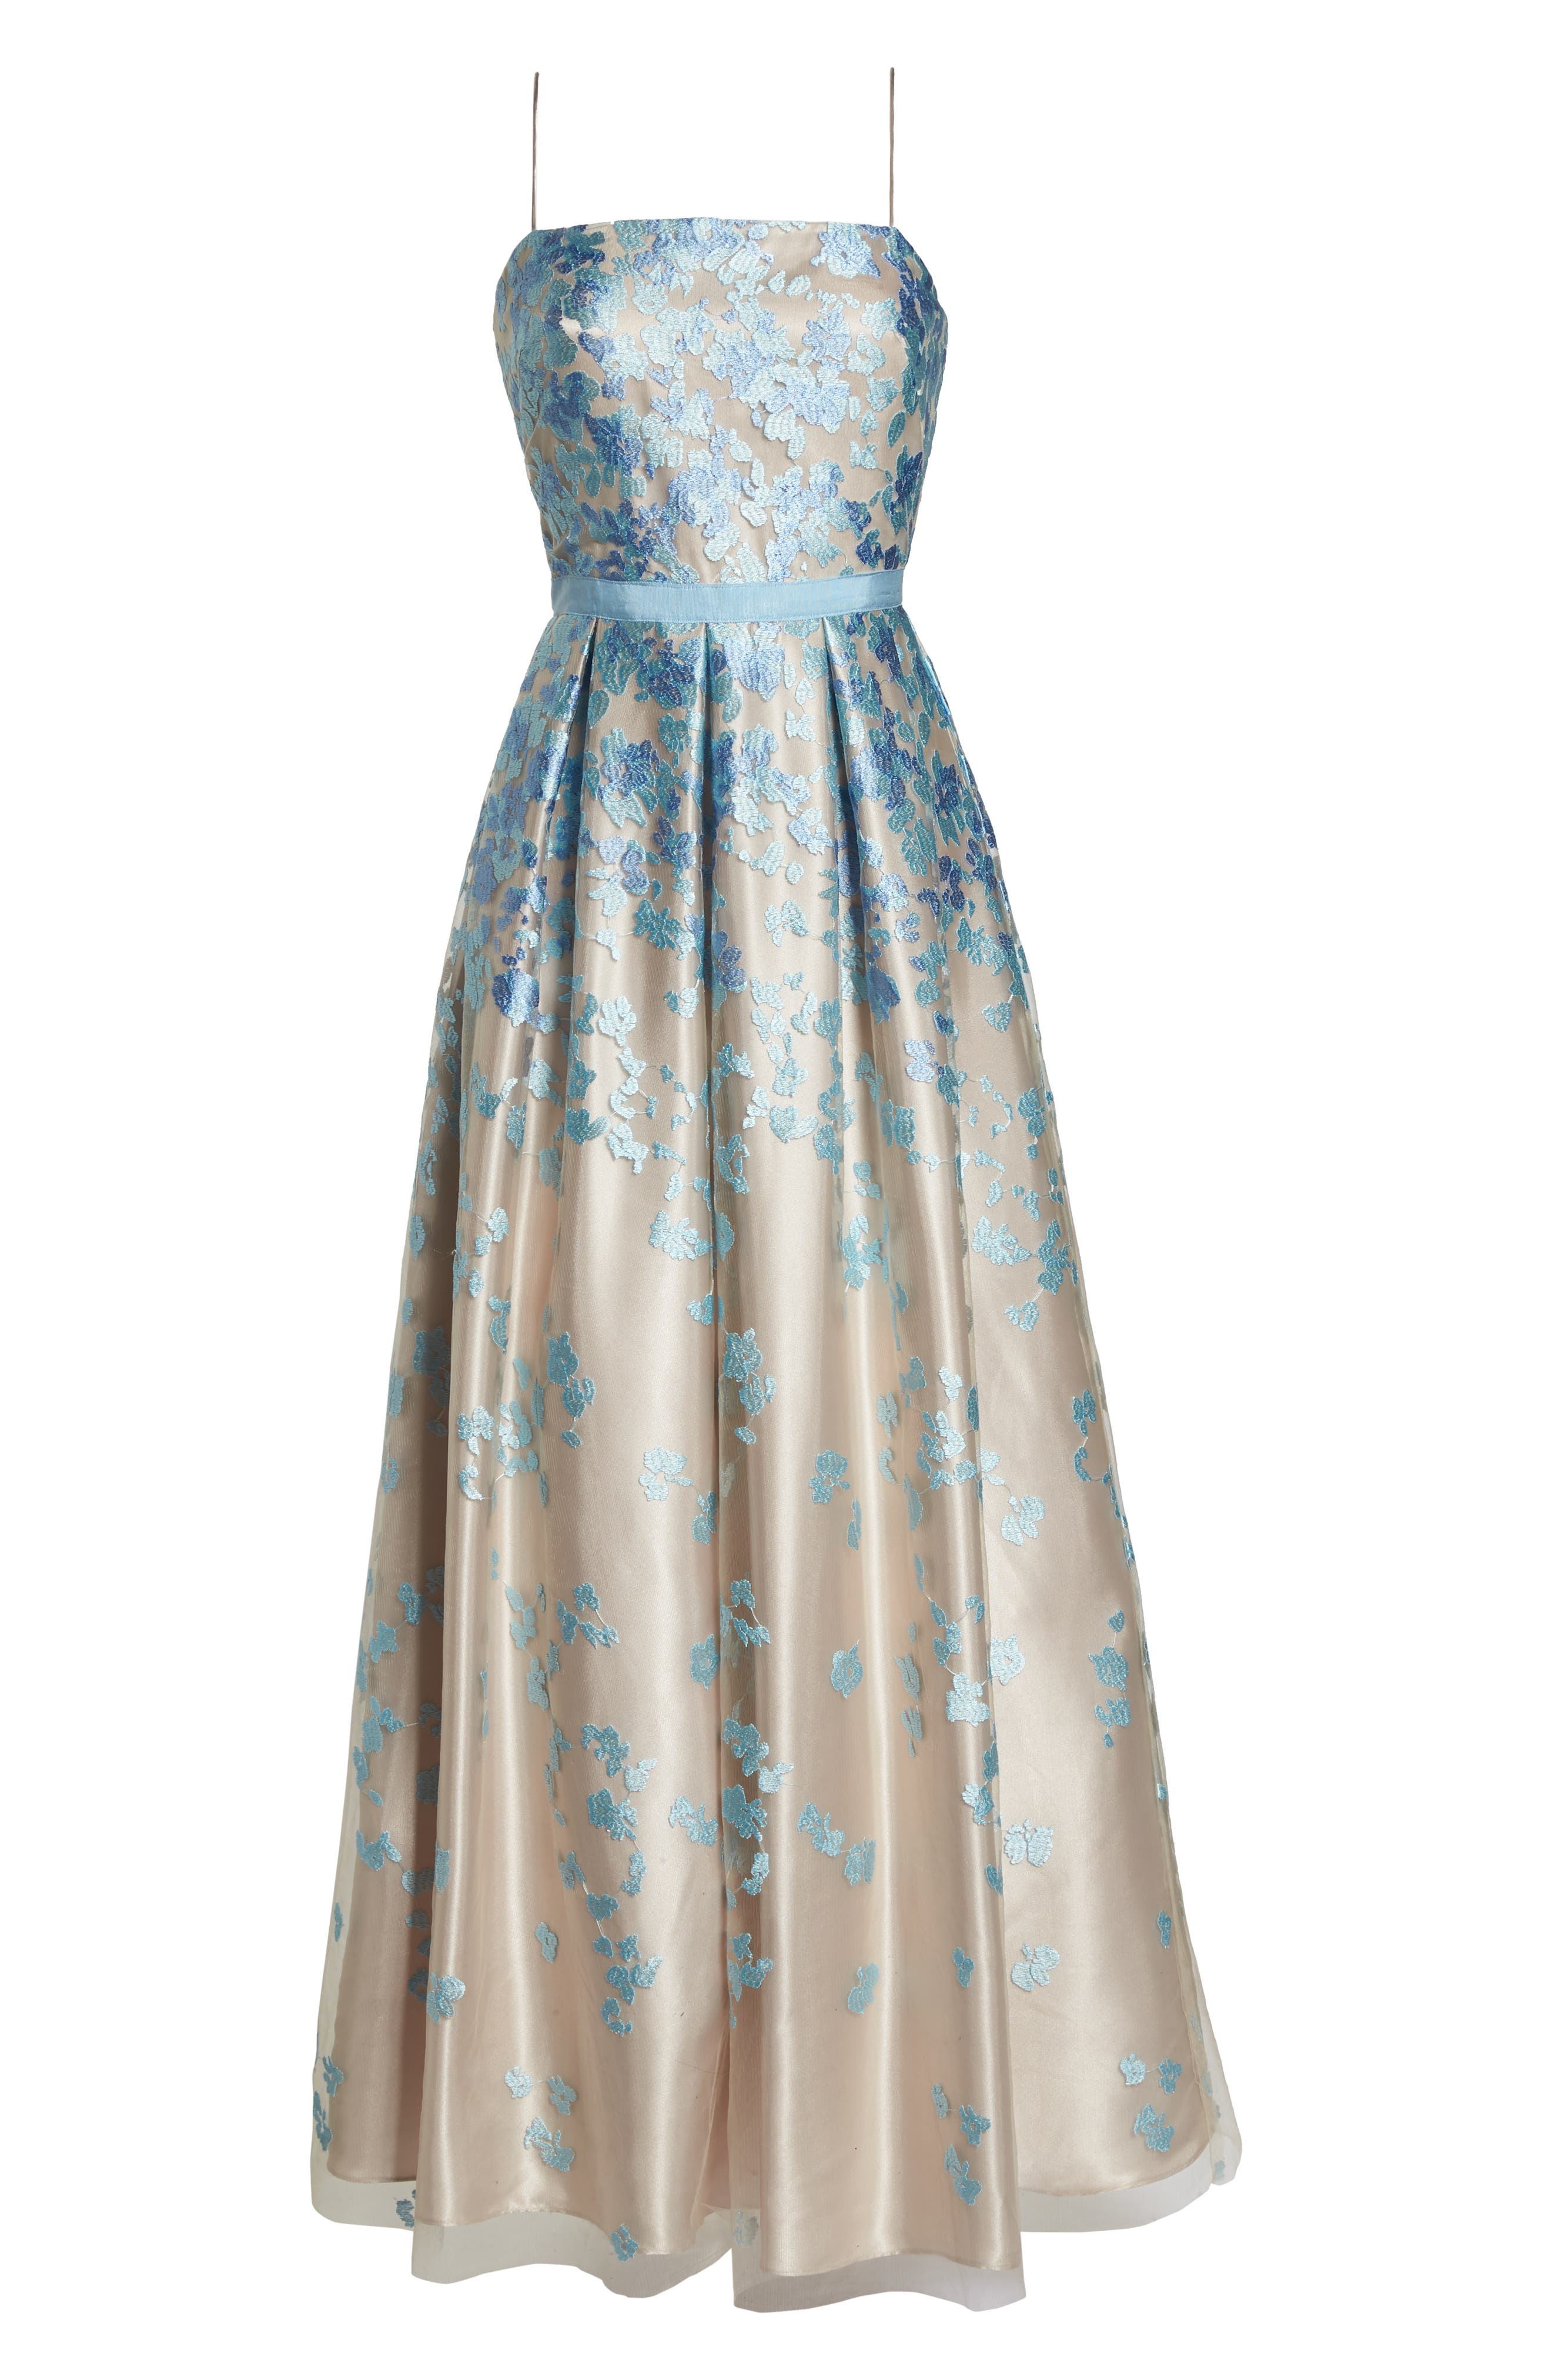 ELIZA J,                             Floral Embroidered Box Pleat Ballgown,                             Alternate thumbnail 7, color,                             450